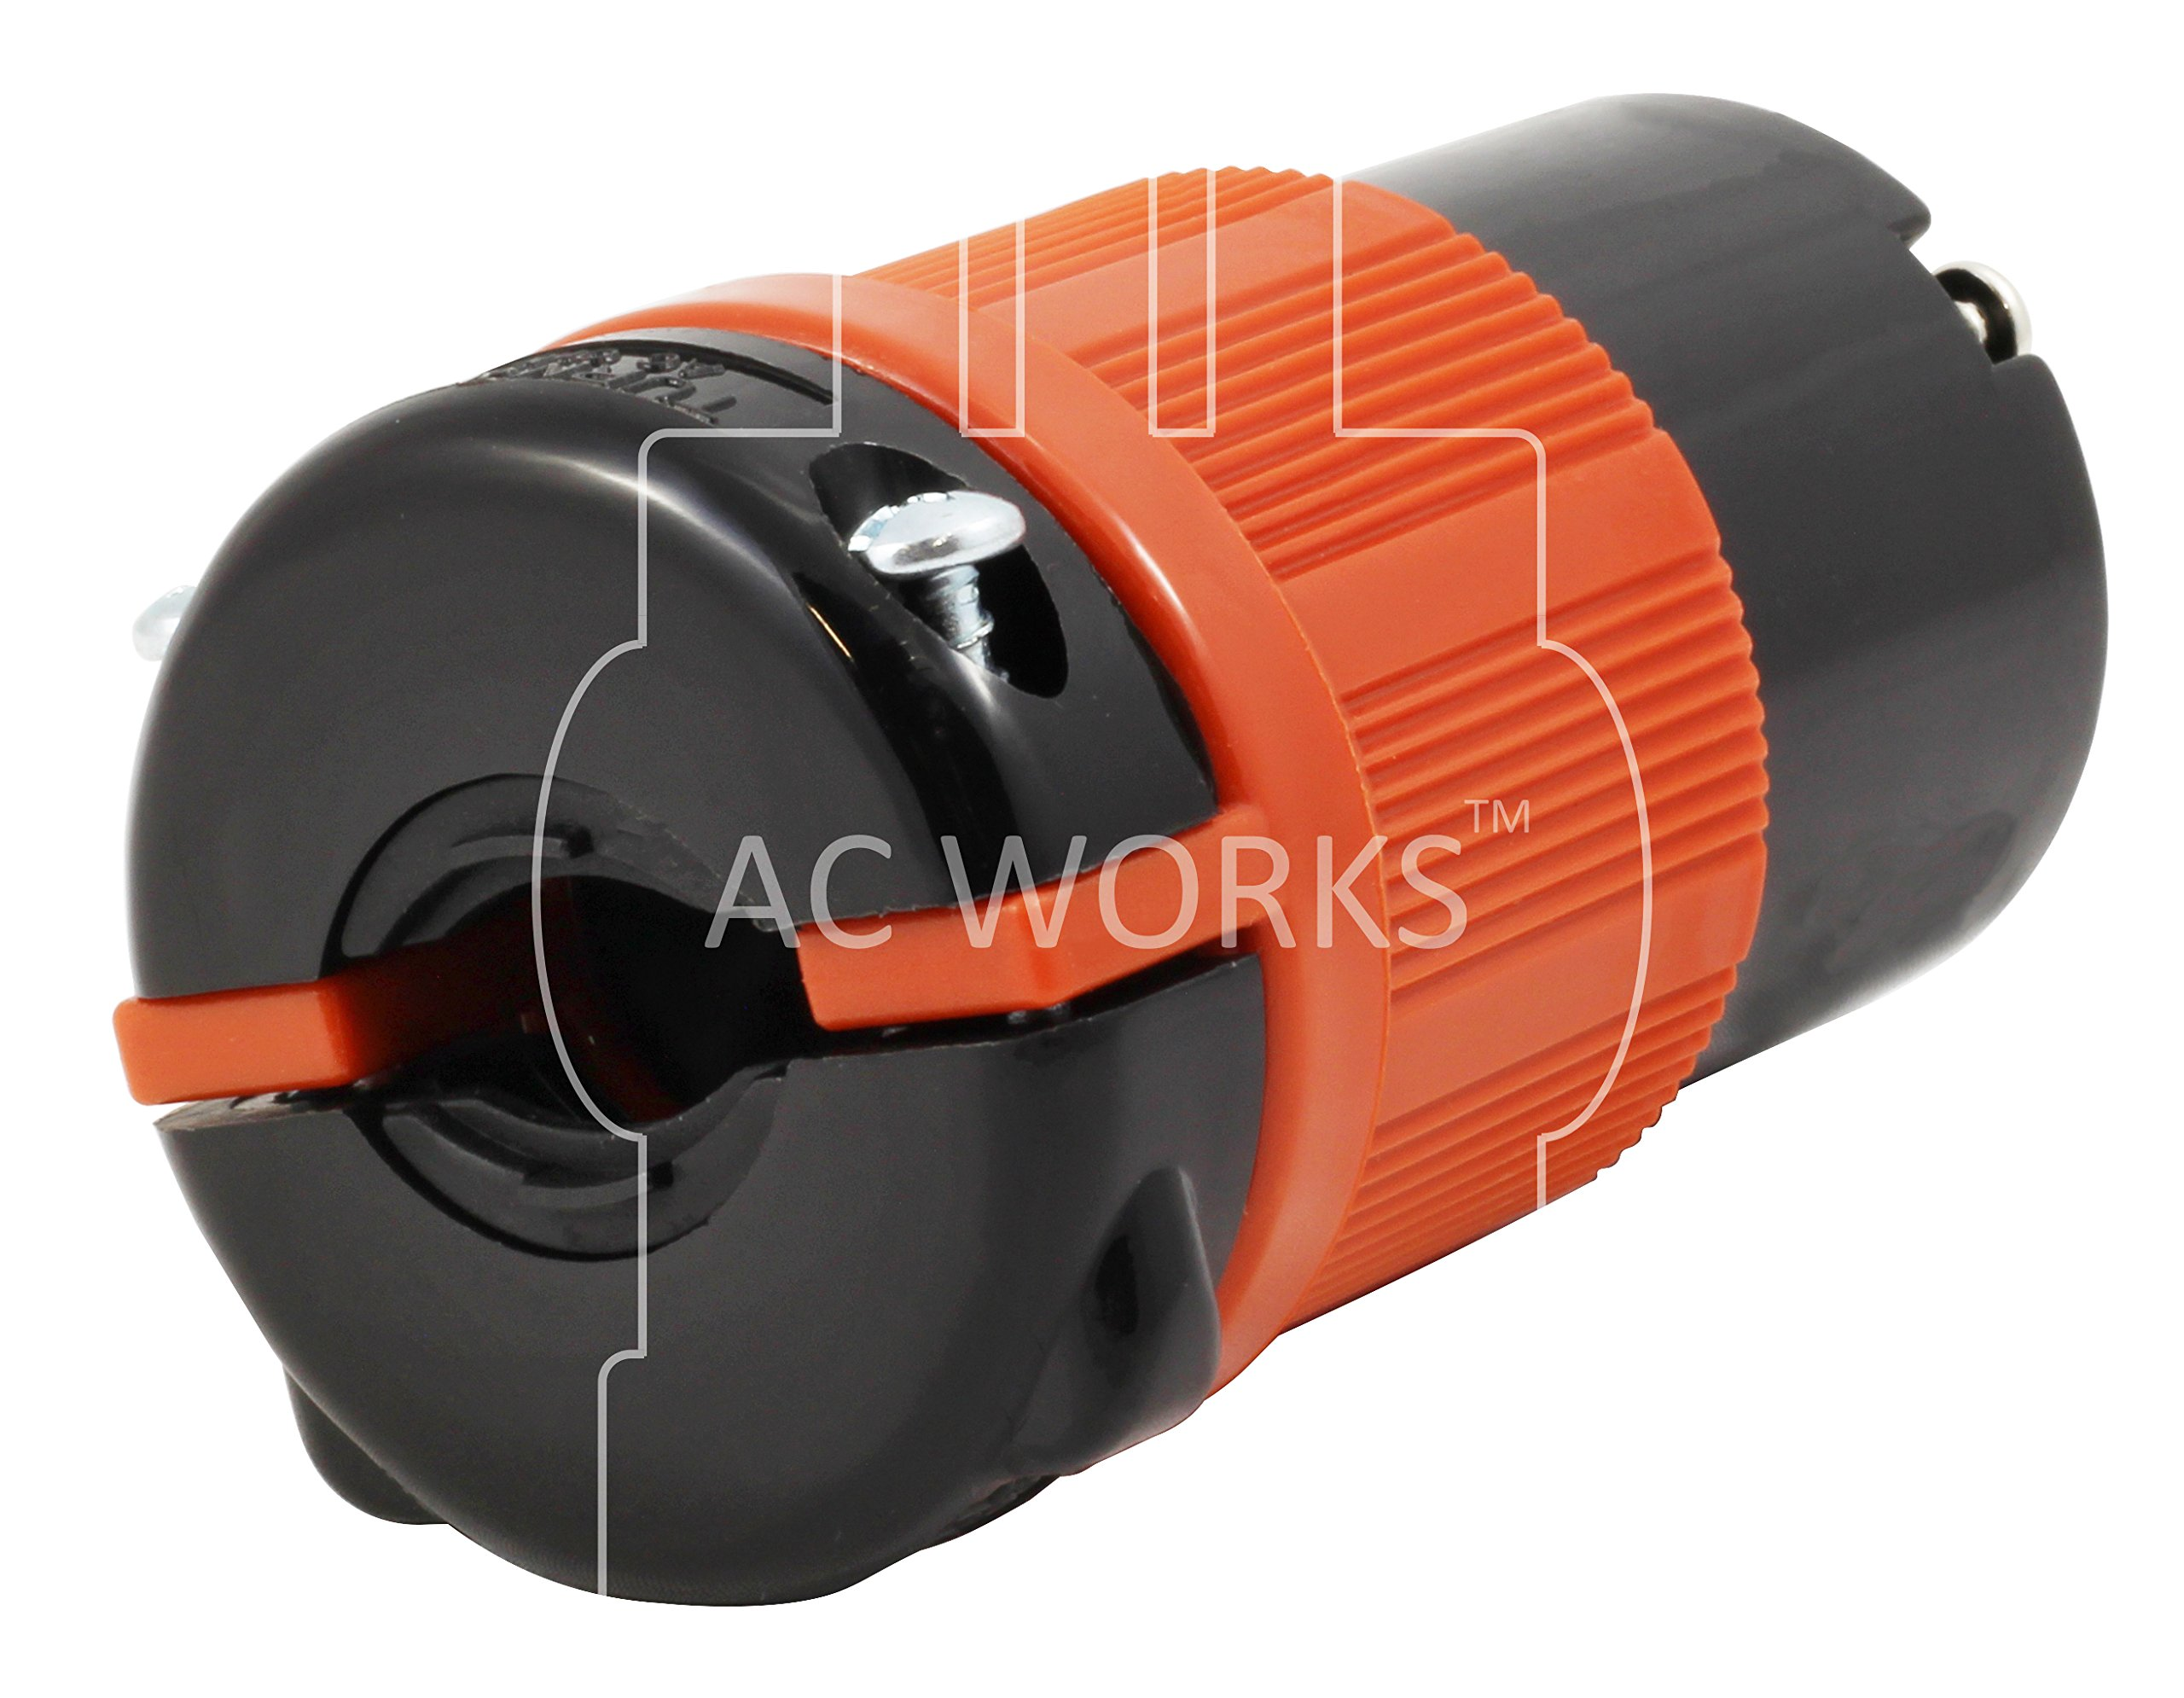 AC WORKS [ASL1430PR] NEMA L14-30 30Amp 125/250Volt 4Prong Locking Male Plug and Female Connector With UL, C-UL Approval by AC WORKS (Image #3)